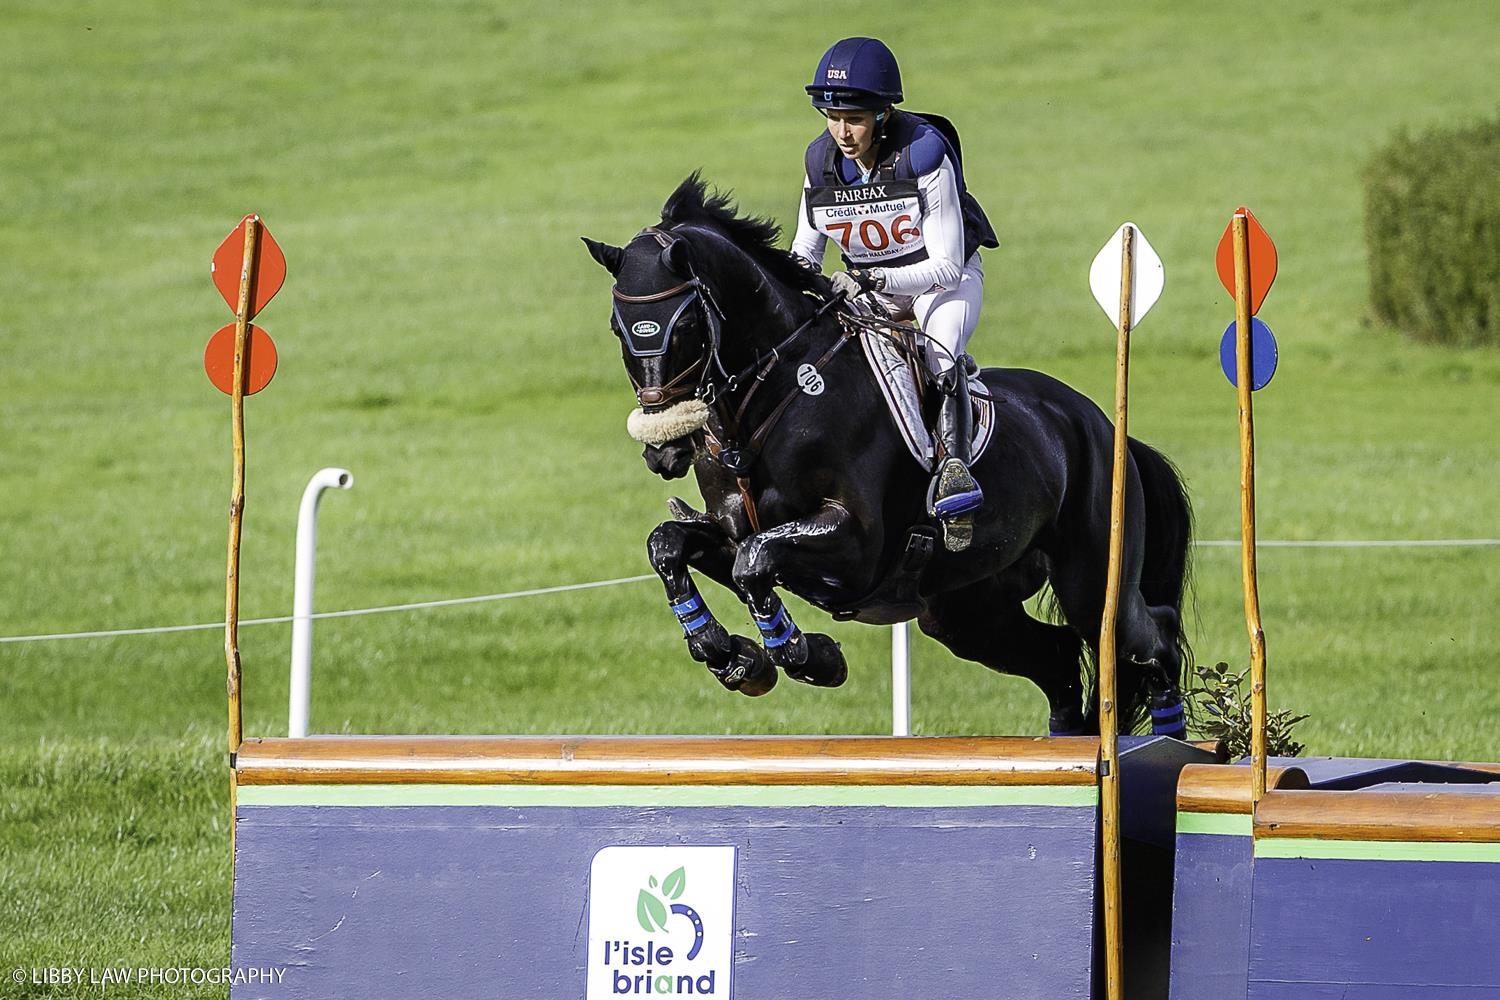 News Flash: Halliday-Sharp and Cooley Moonshine Earn Silver in FEI WBFSH Eventing World Breeding Championships